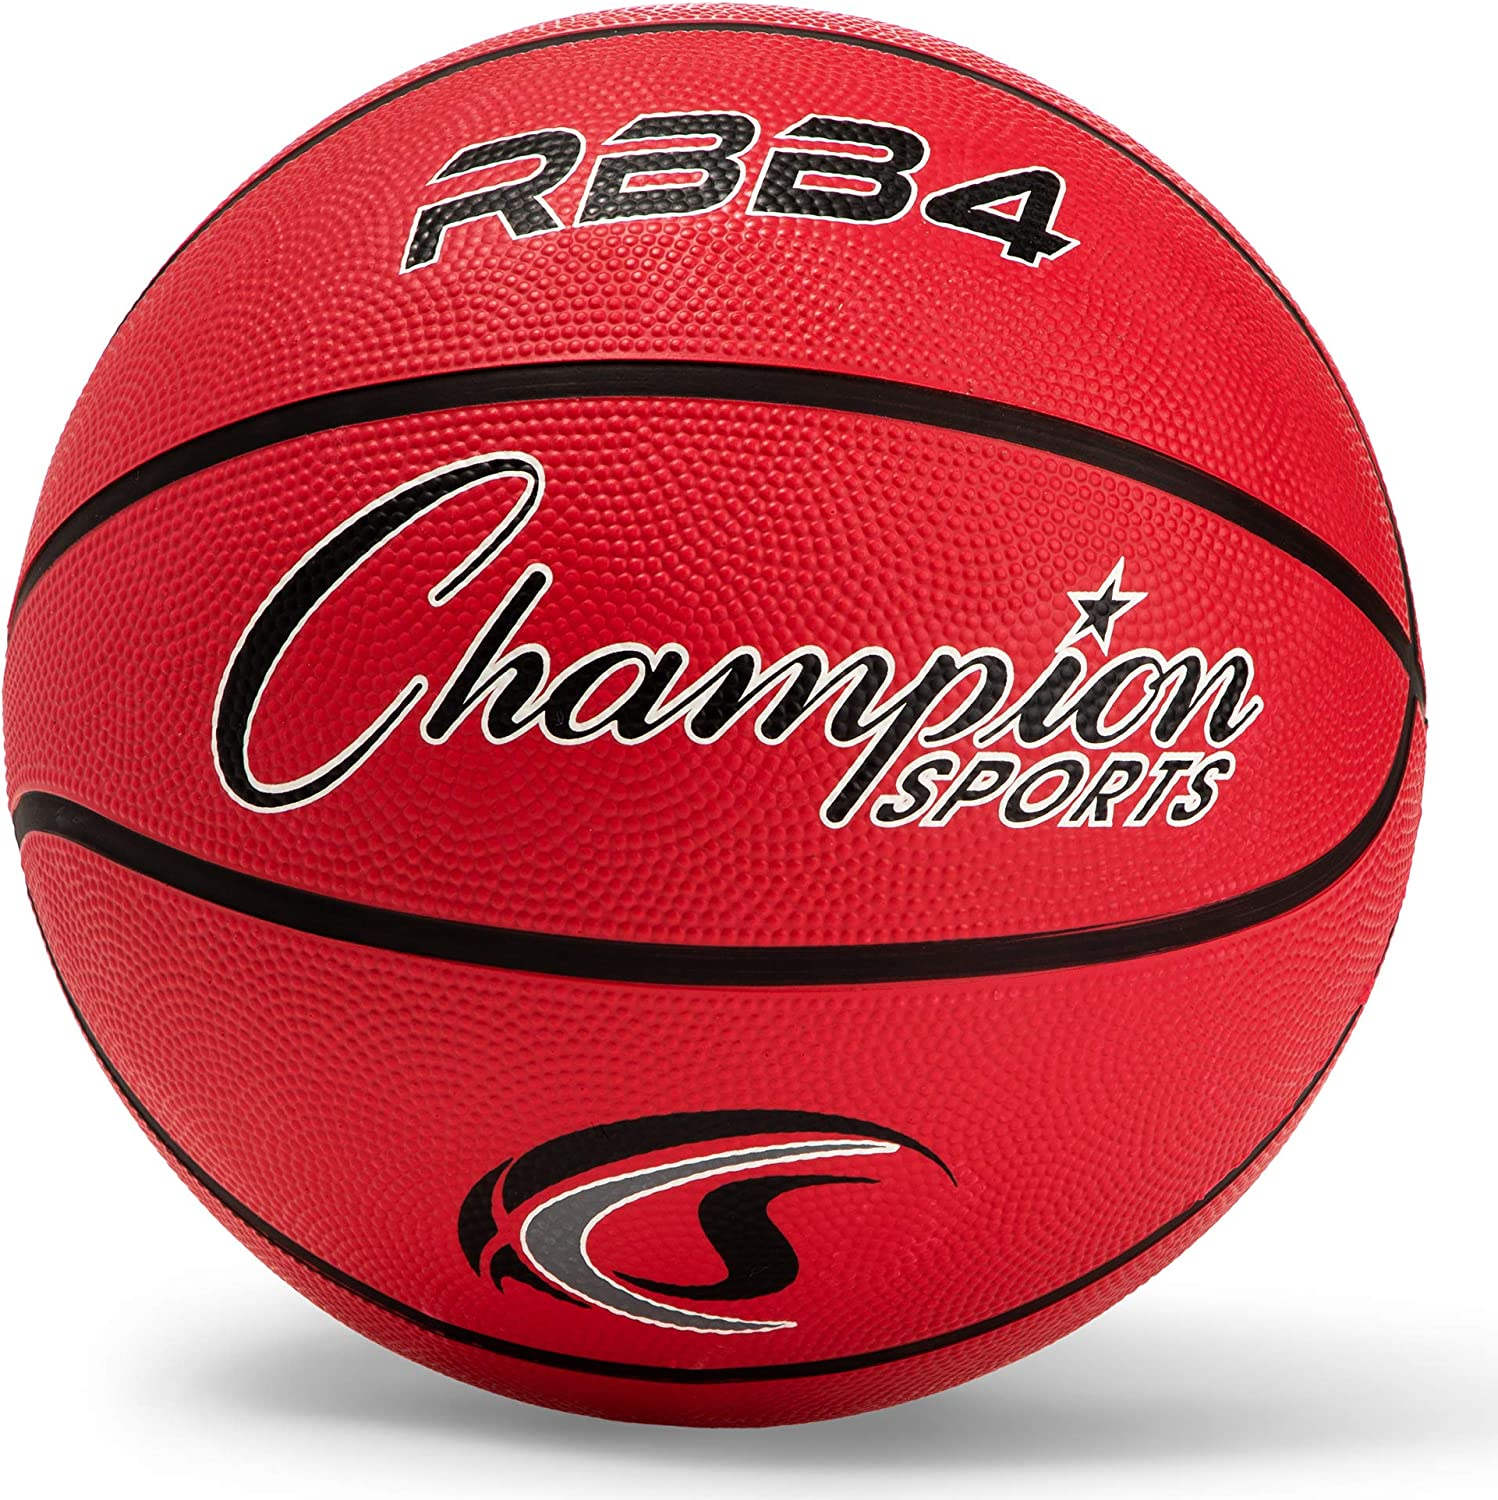 Champion Sports Rubber Intermediate Basketball, Heavy Duty - Pro-Style Basketballs, Various Colors and Sizes - Premium Basketball Equipment, Indoor Outdoor - Sports Education Supplies (Size 6, Red) : Womens Sized Basketballs : Sports & Outdoors